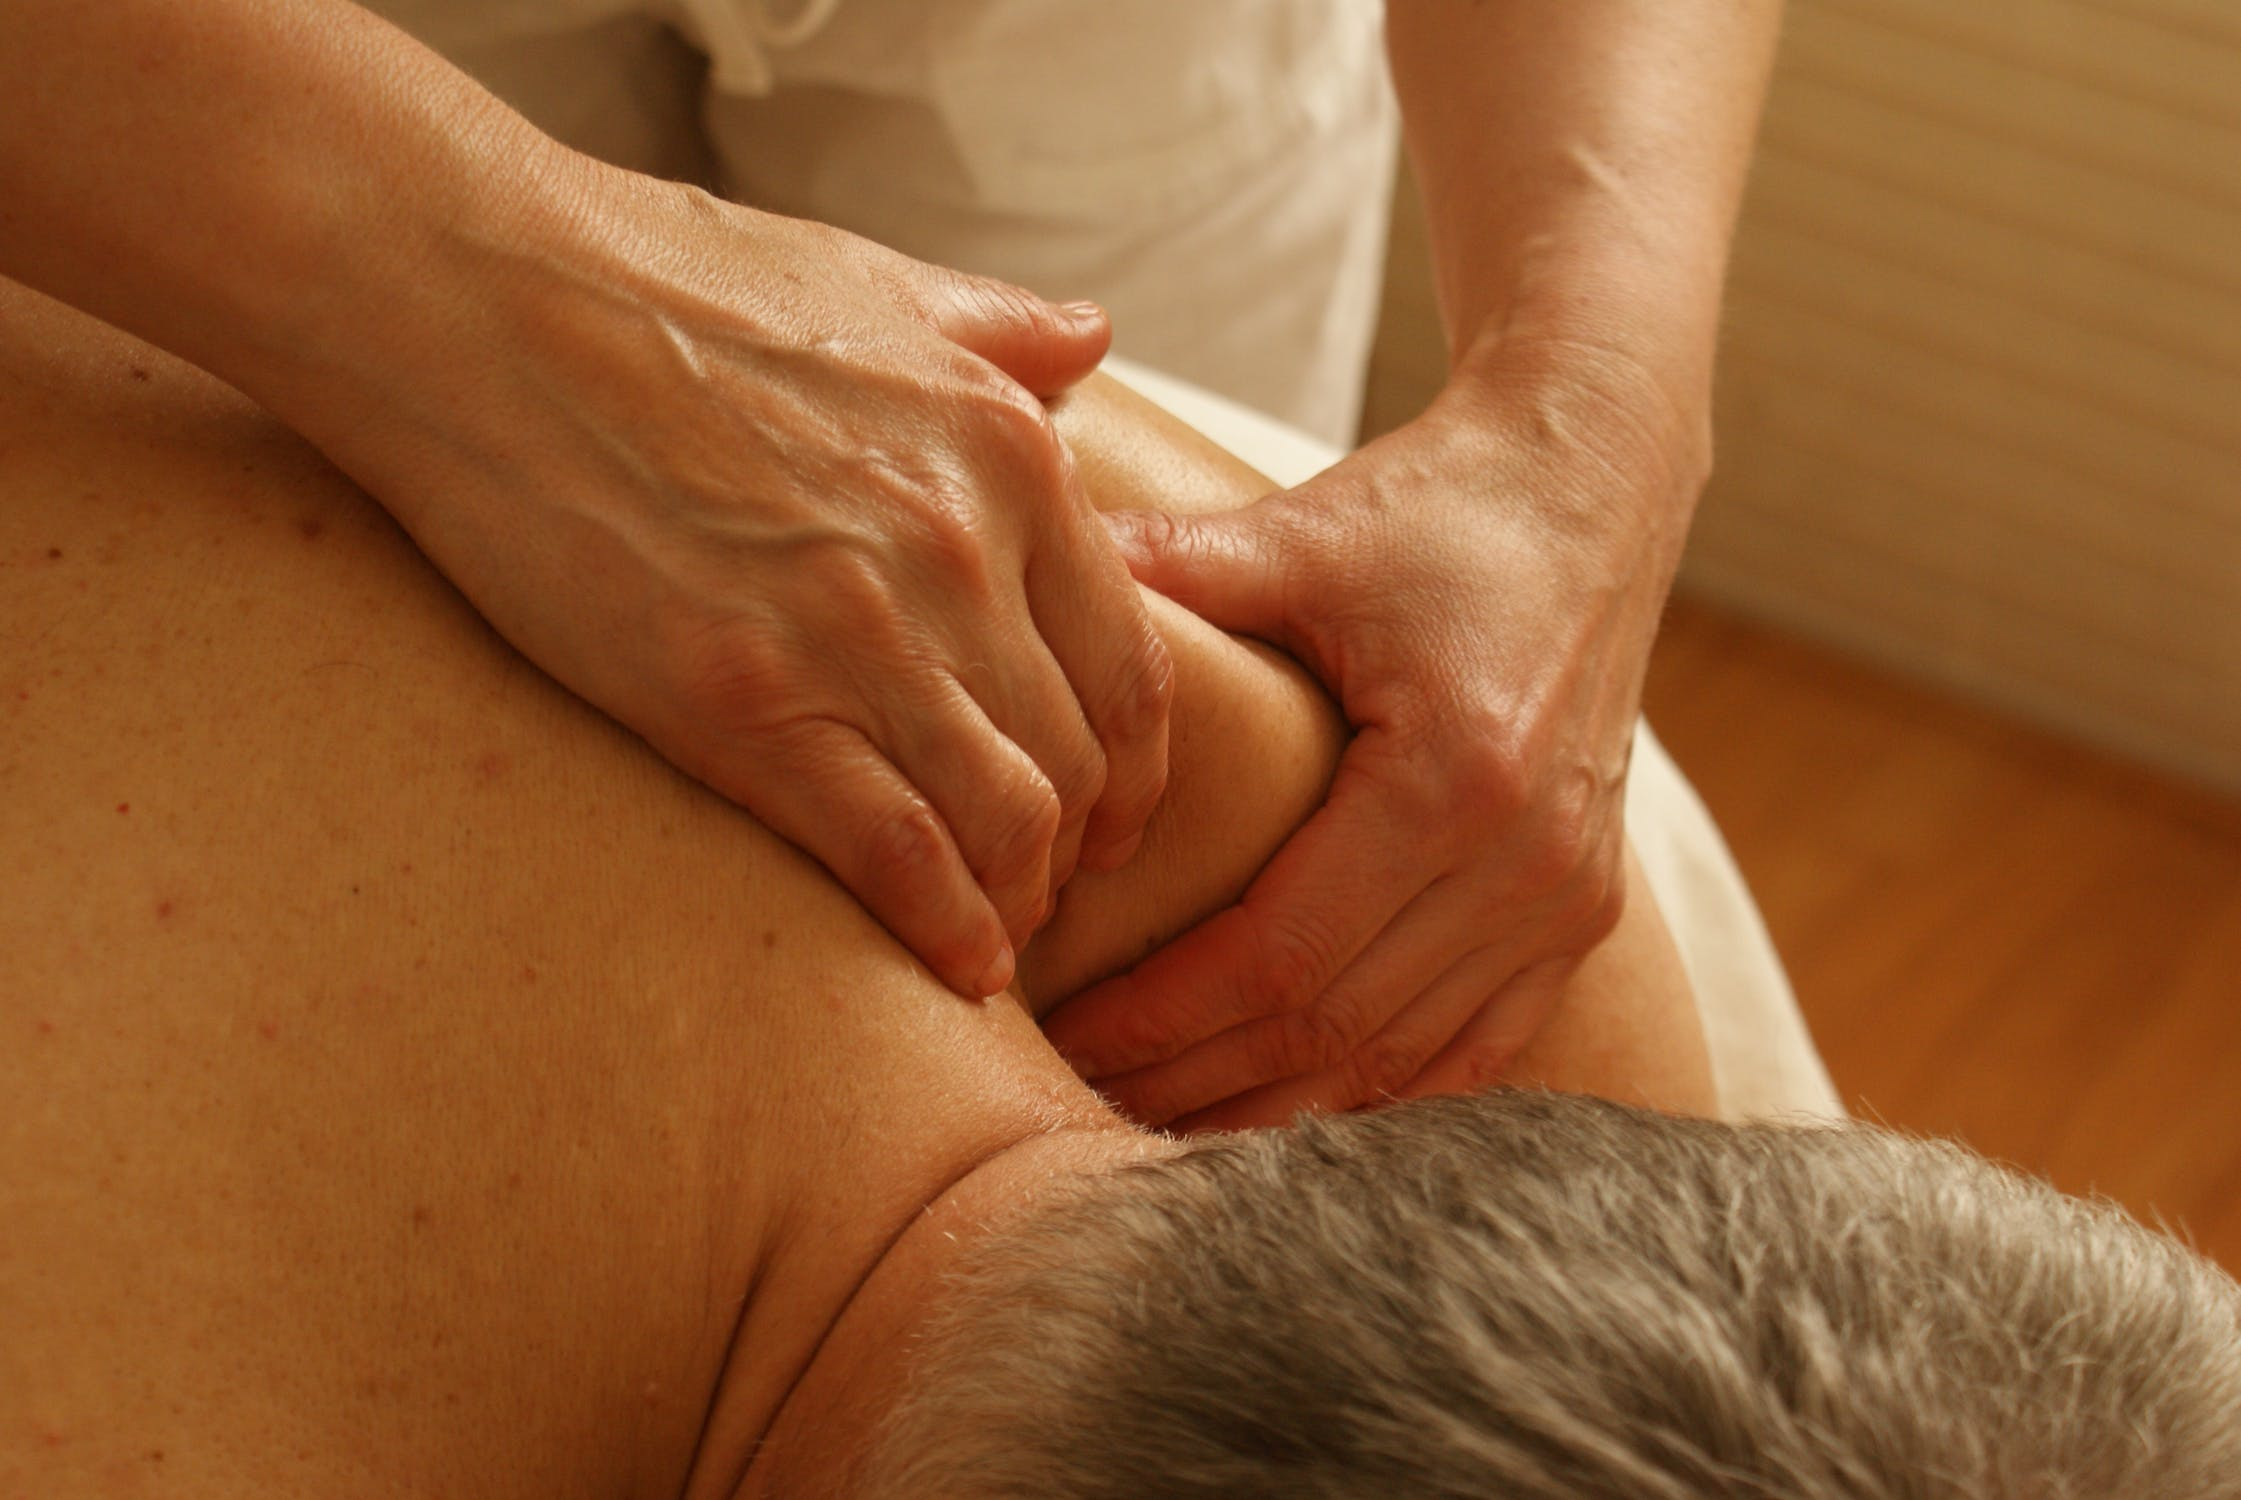 Case study – physiotherapy treatment for shoulder and arm pain